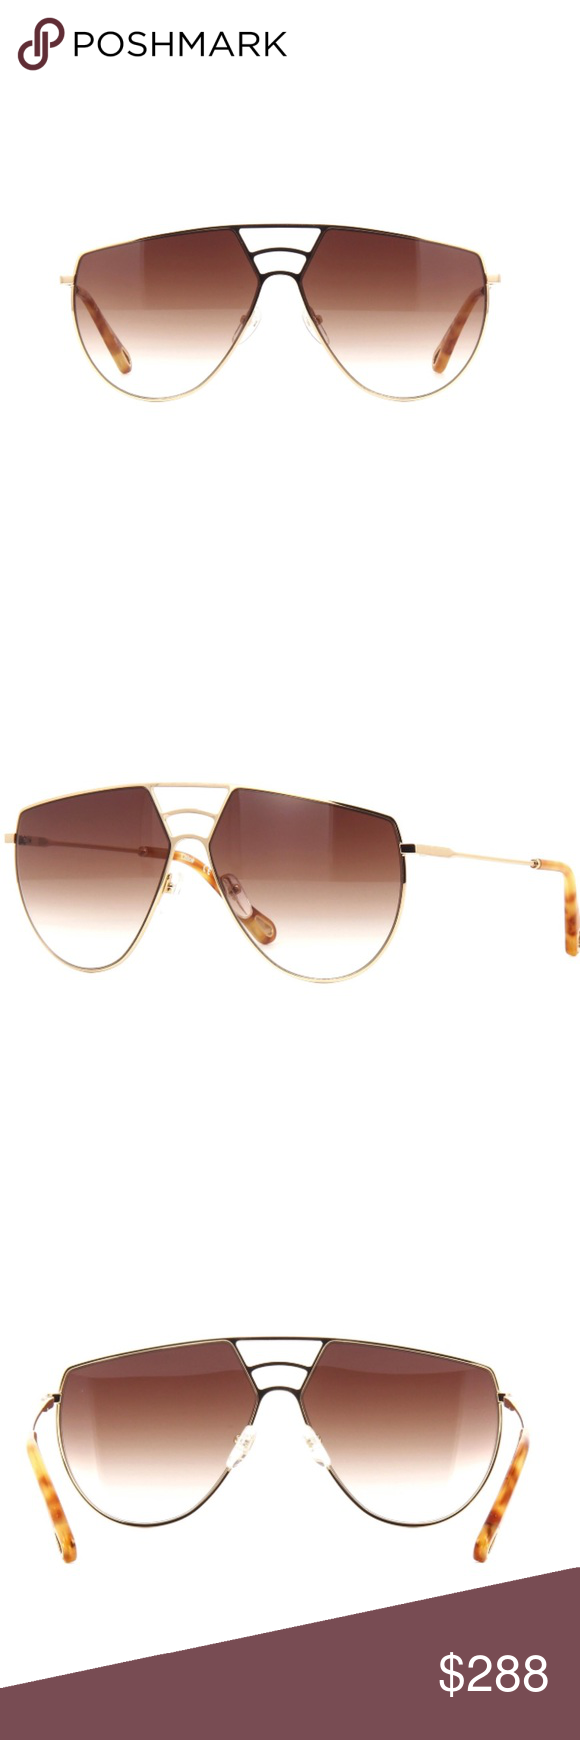 cdb63a506f1d Authentic Chloe Sunglasses NWT! Gorgeous Chloe sunglasses. Gold frame with  brown gradient. Shipping